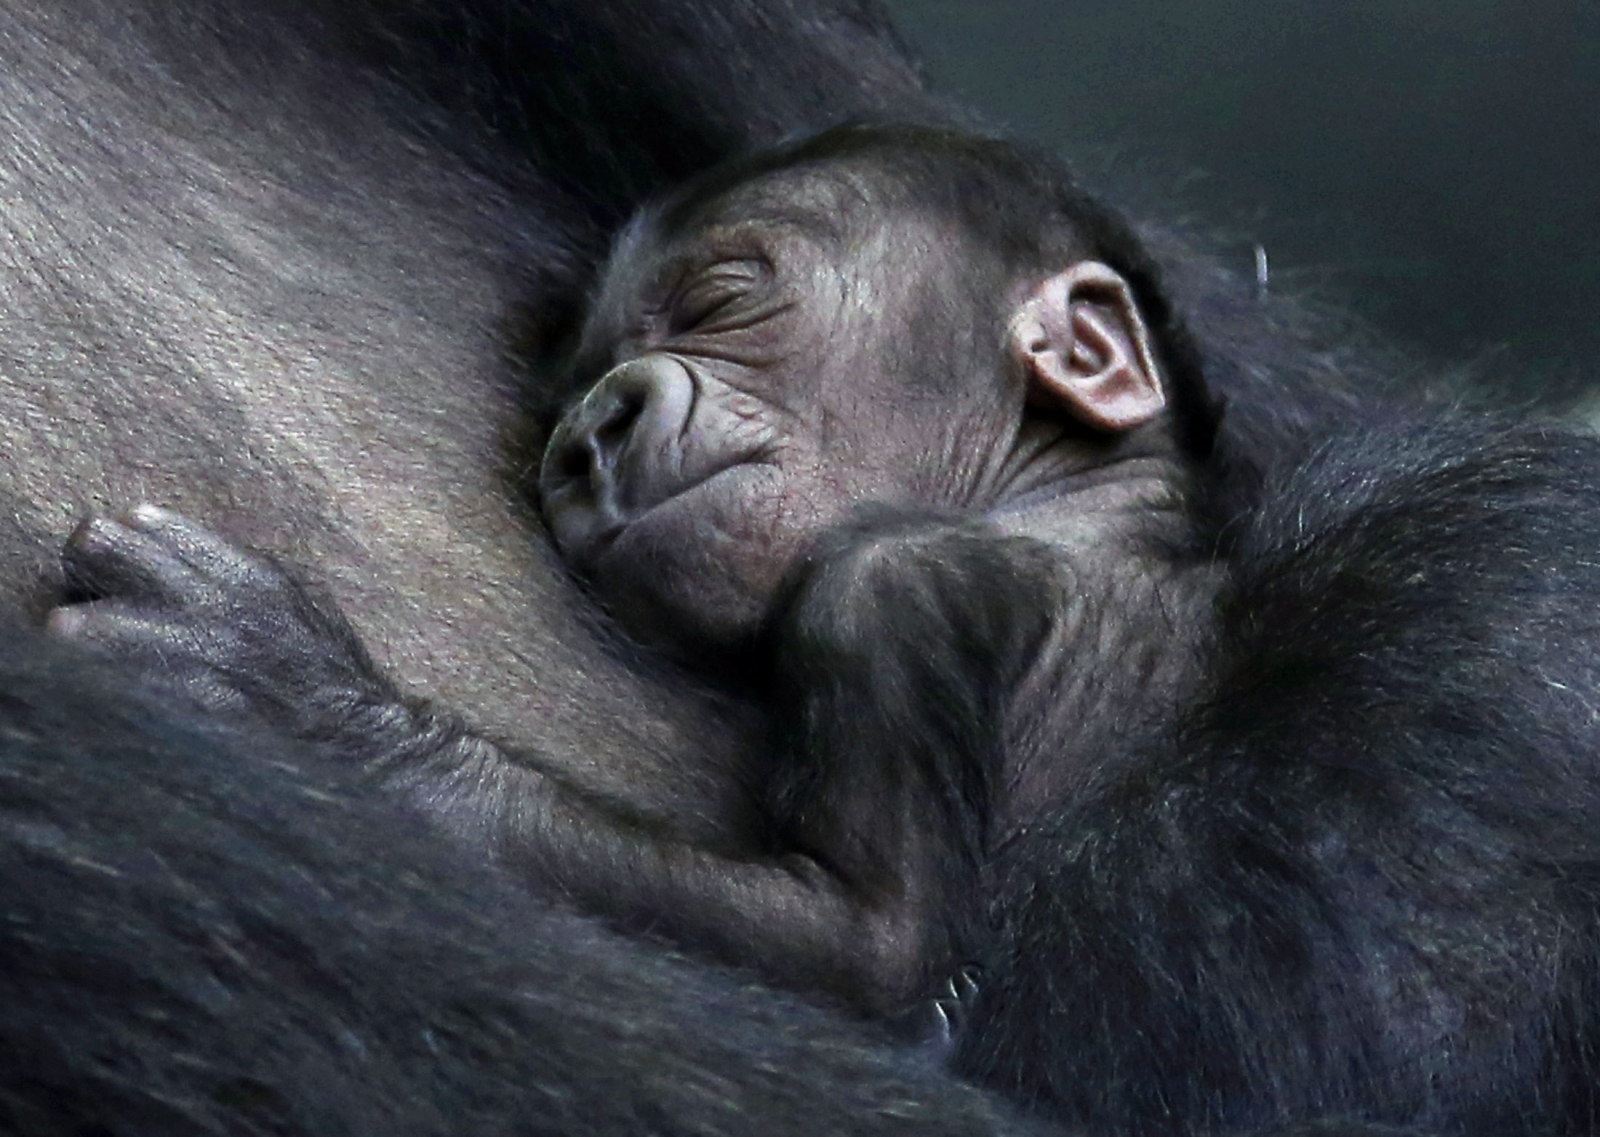 Fce F C moreover Zoo X likewise Ginger Baby Monkey At London Zoo besides Img B also Maxresdefault. on baby zoo animals